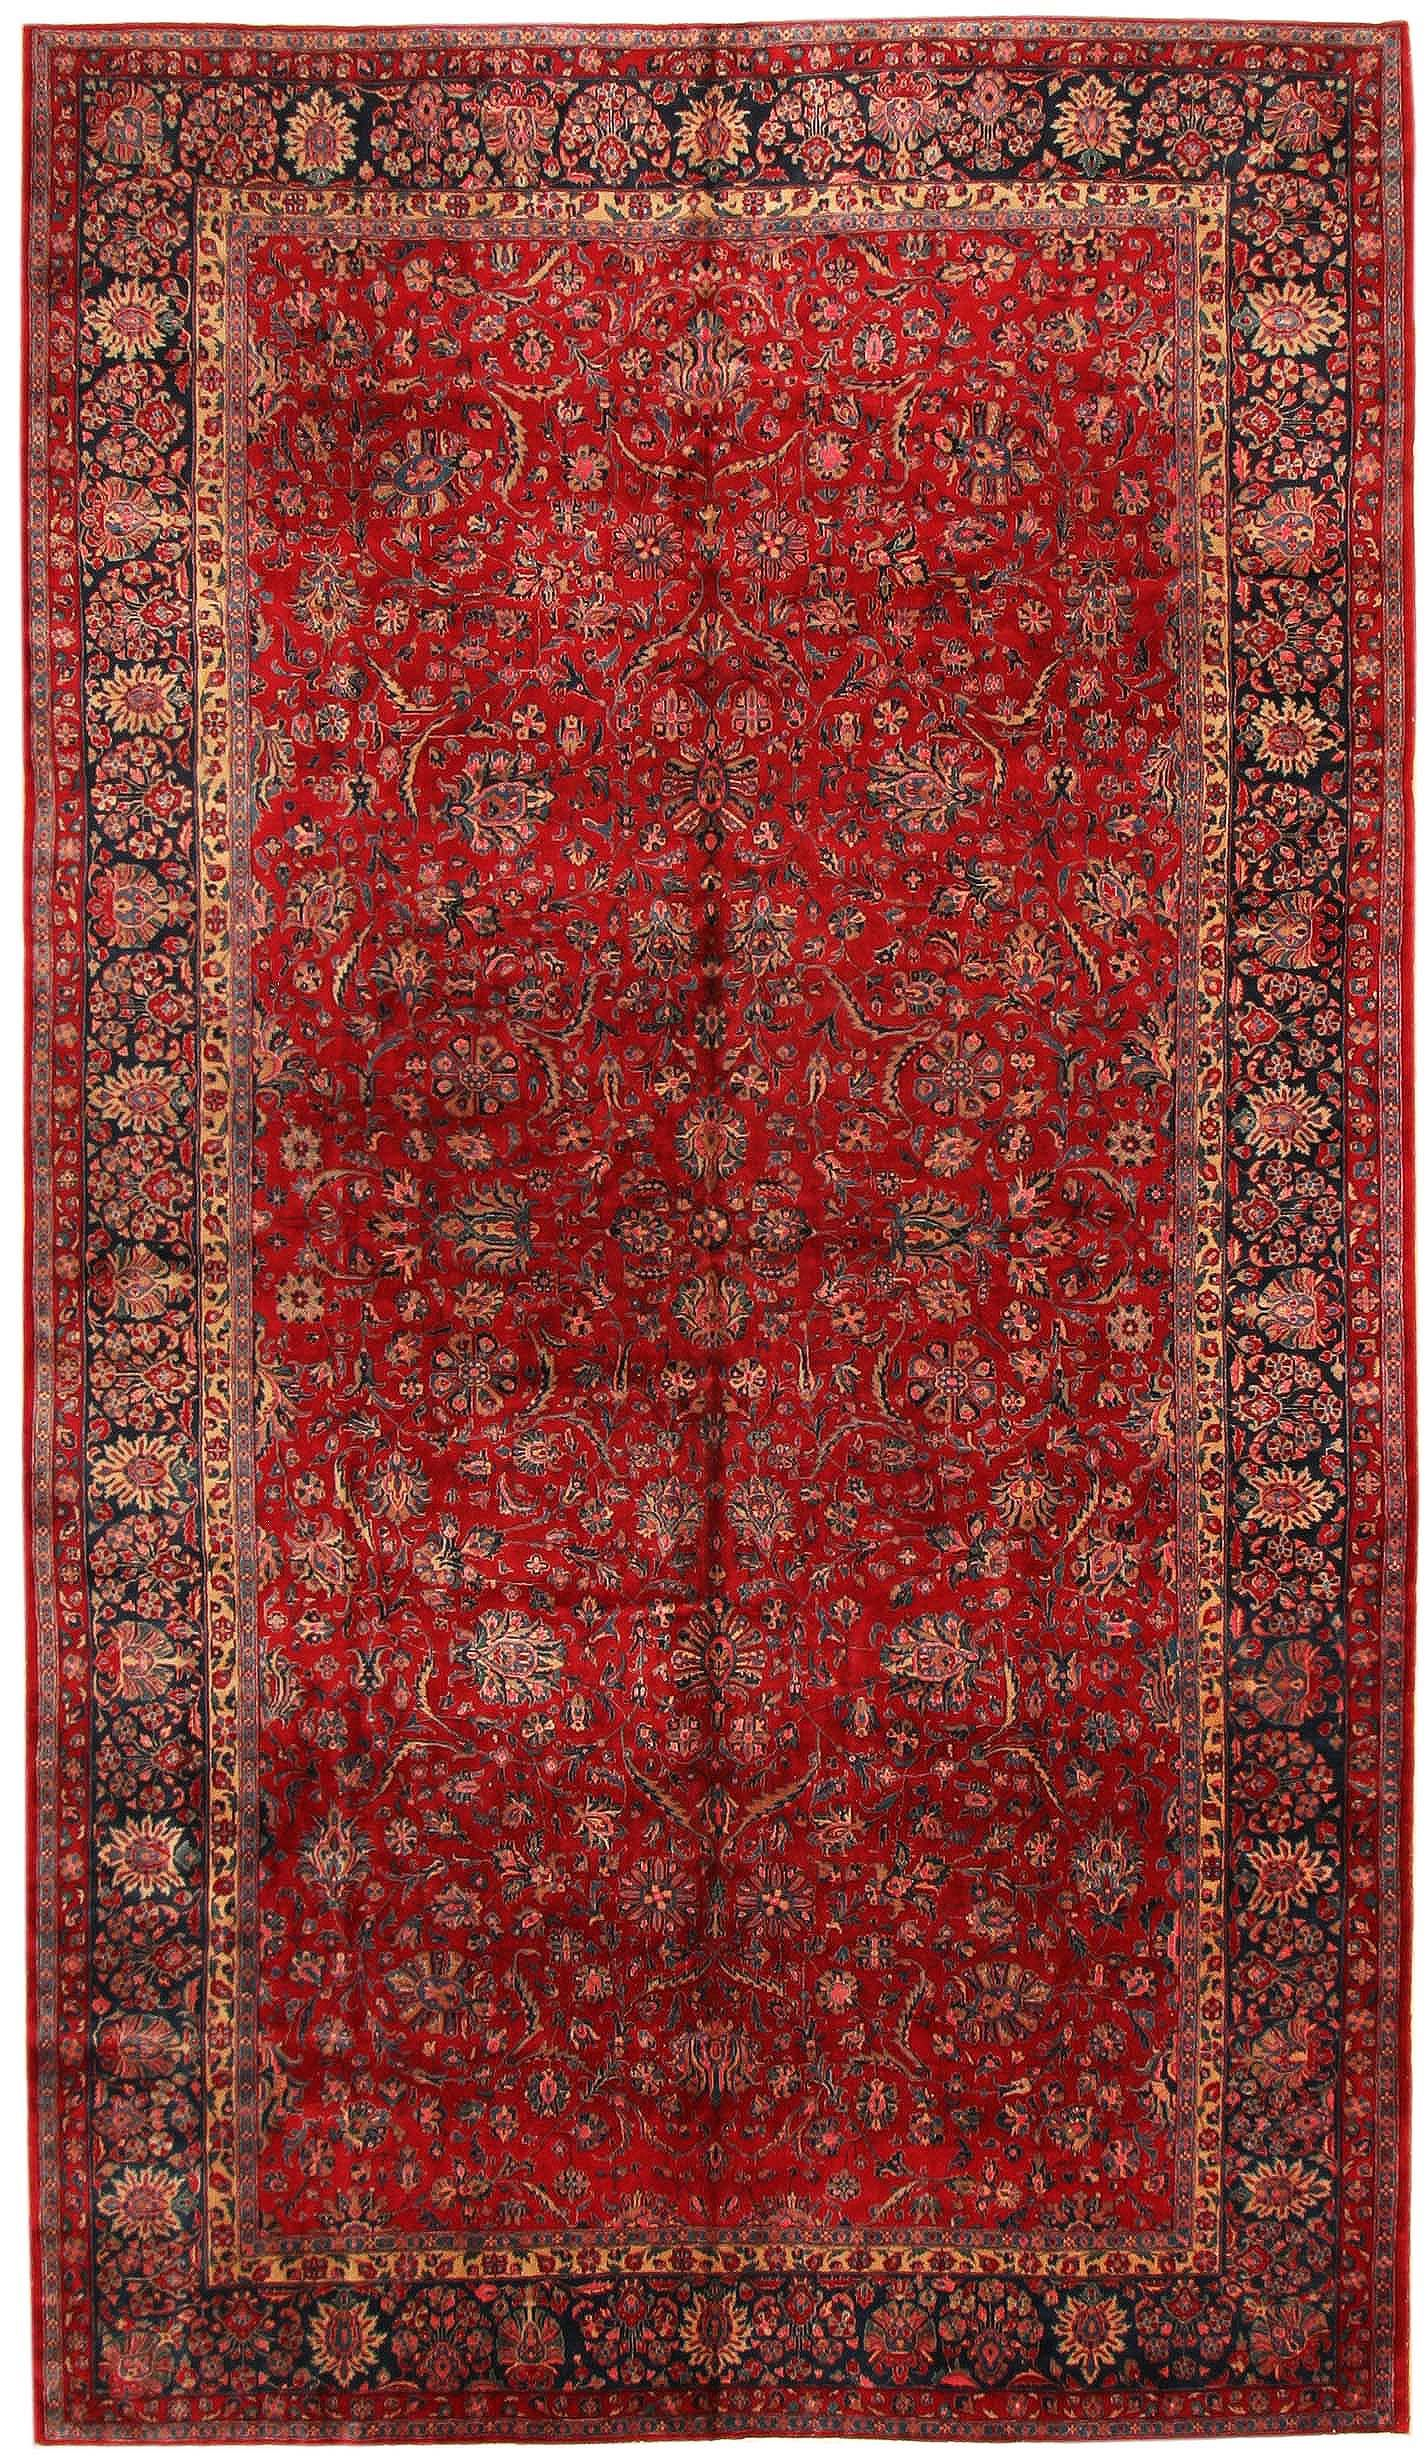 Tappeti Persiani Corridoio Antique Kashan Persian Rug 43573 Nazmiyal Collection Tappeti